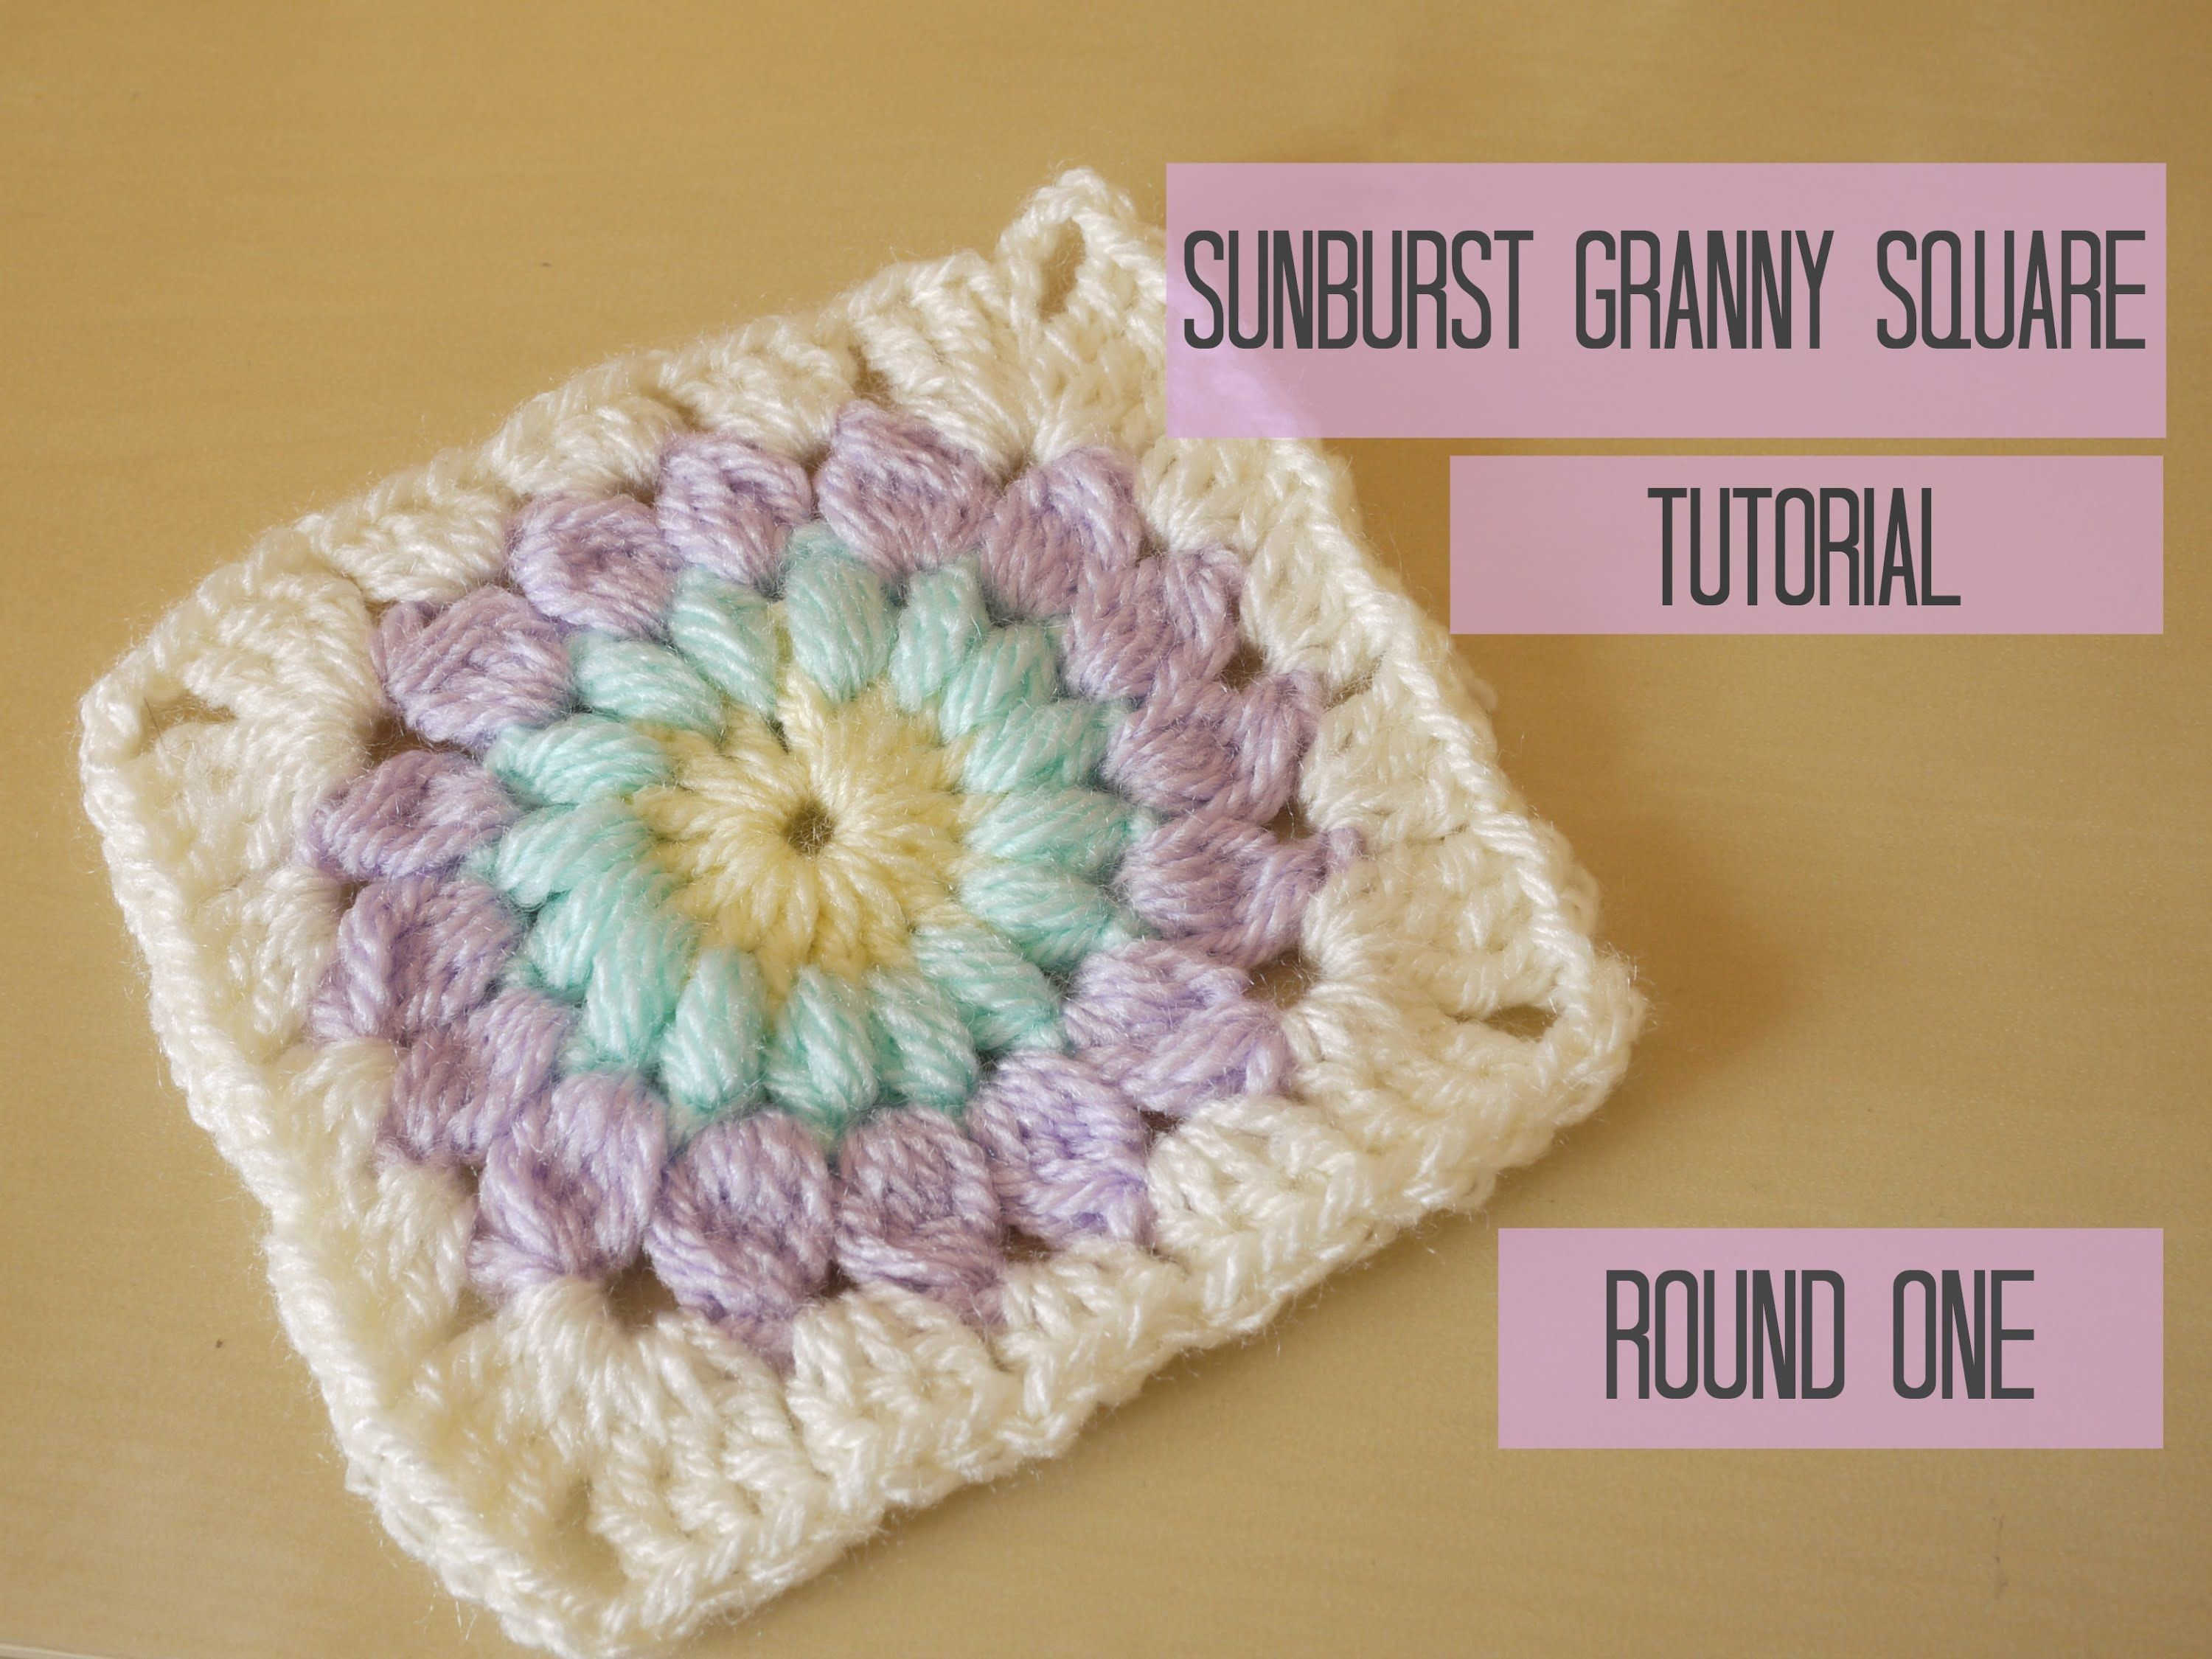 How To Crochet: Sunburst Granny Square Tutorial: Round One  Bella Coco